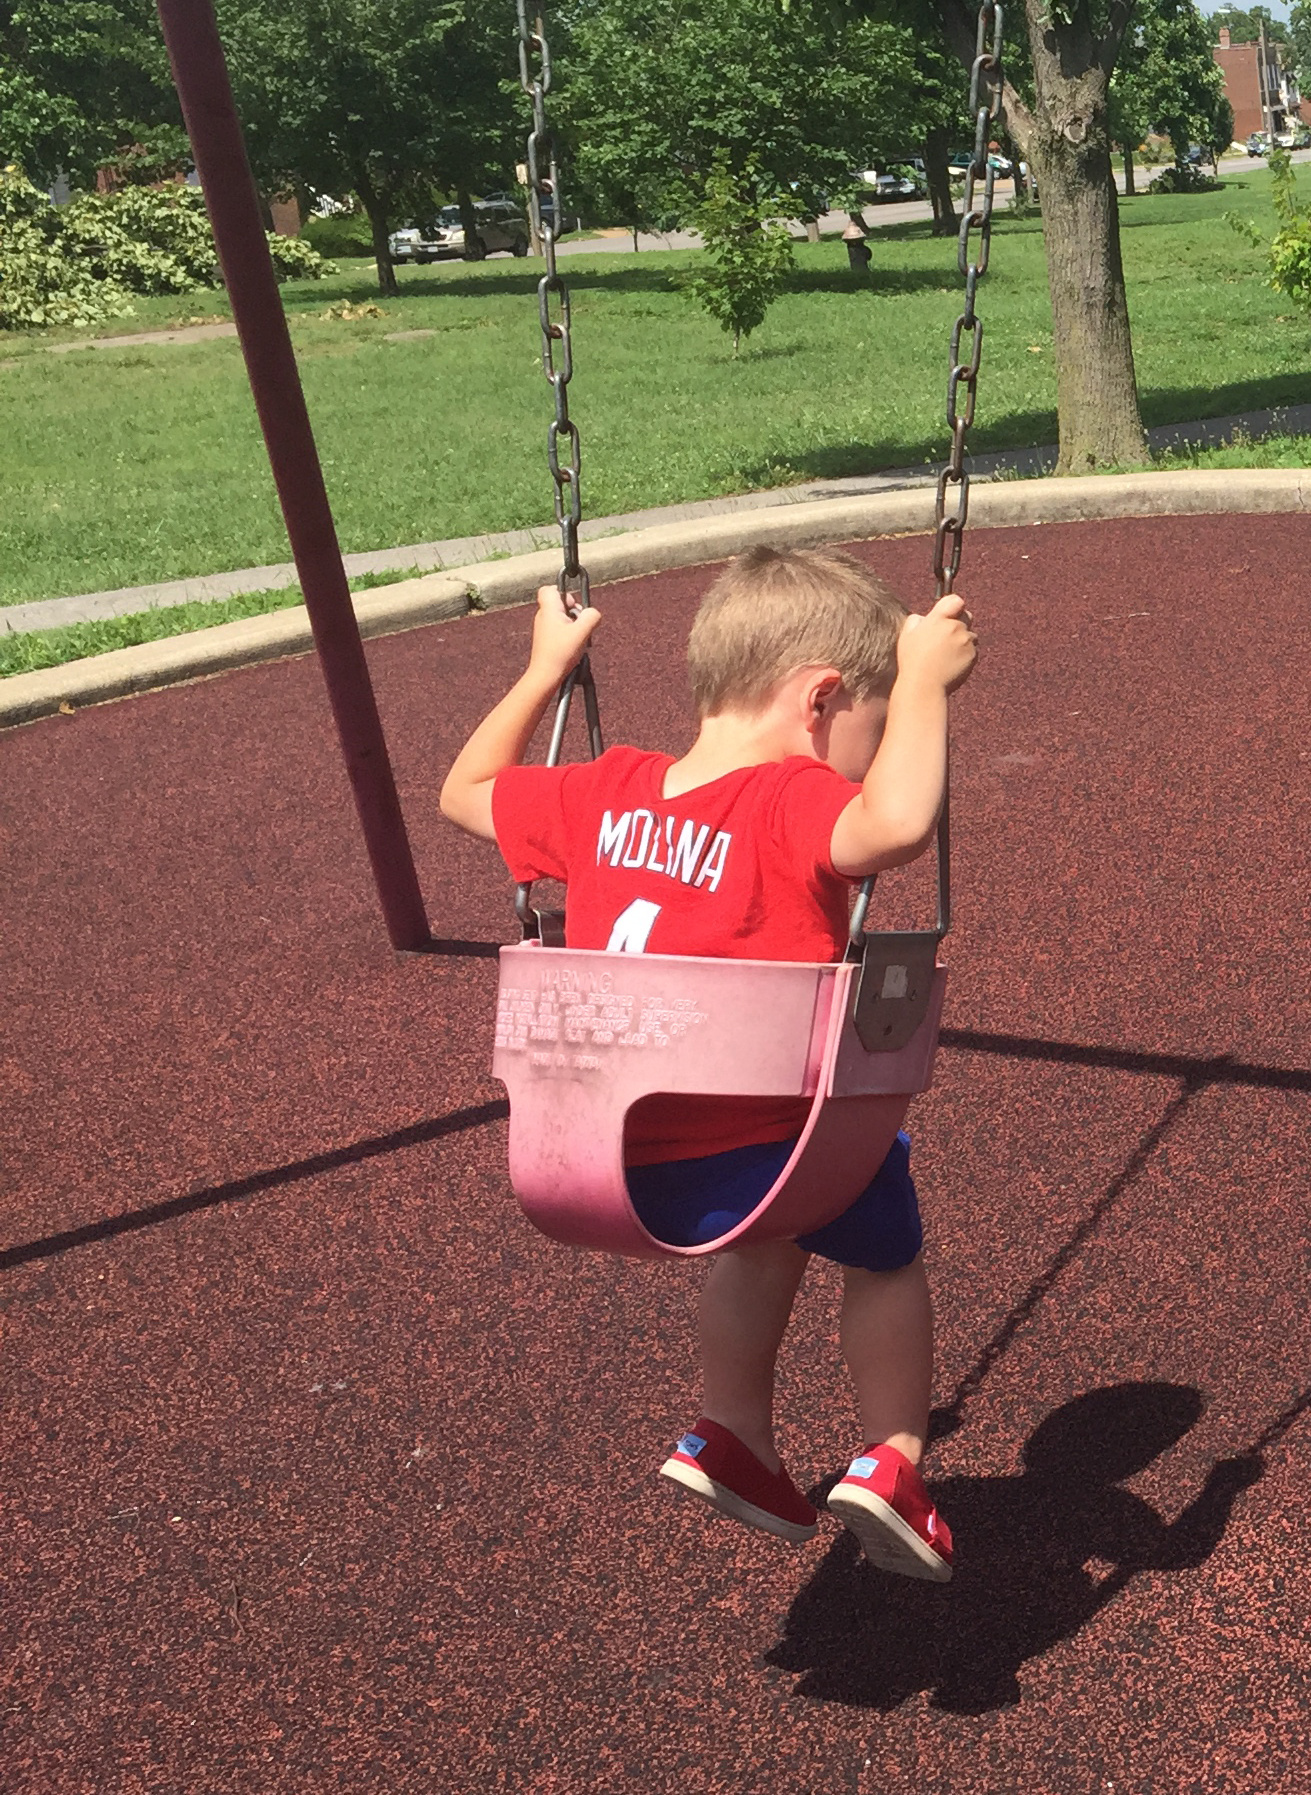 The author's son wearing a Yadier Molina shirt on the swing